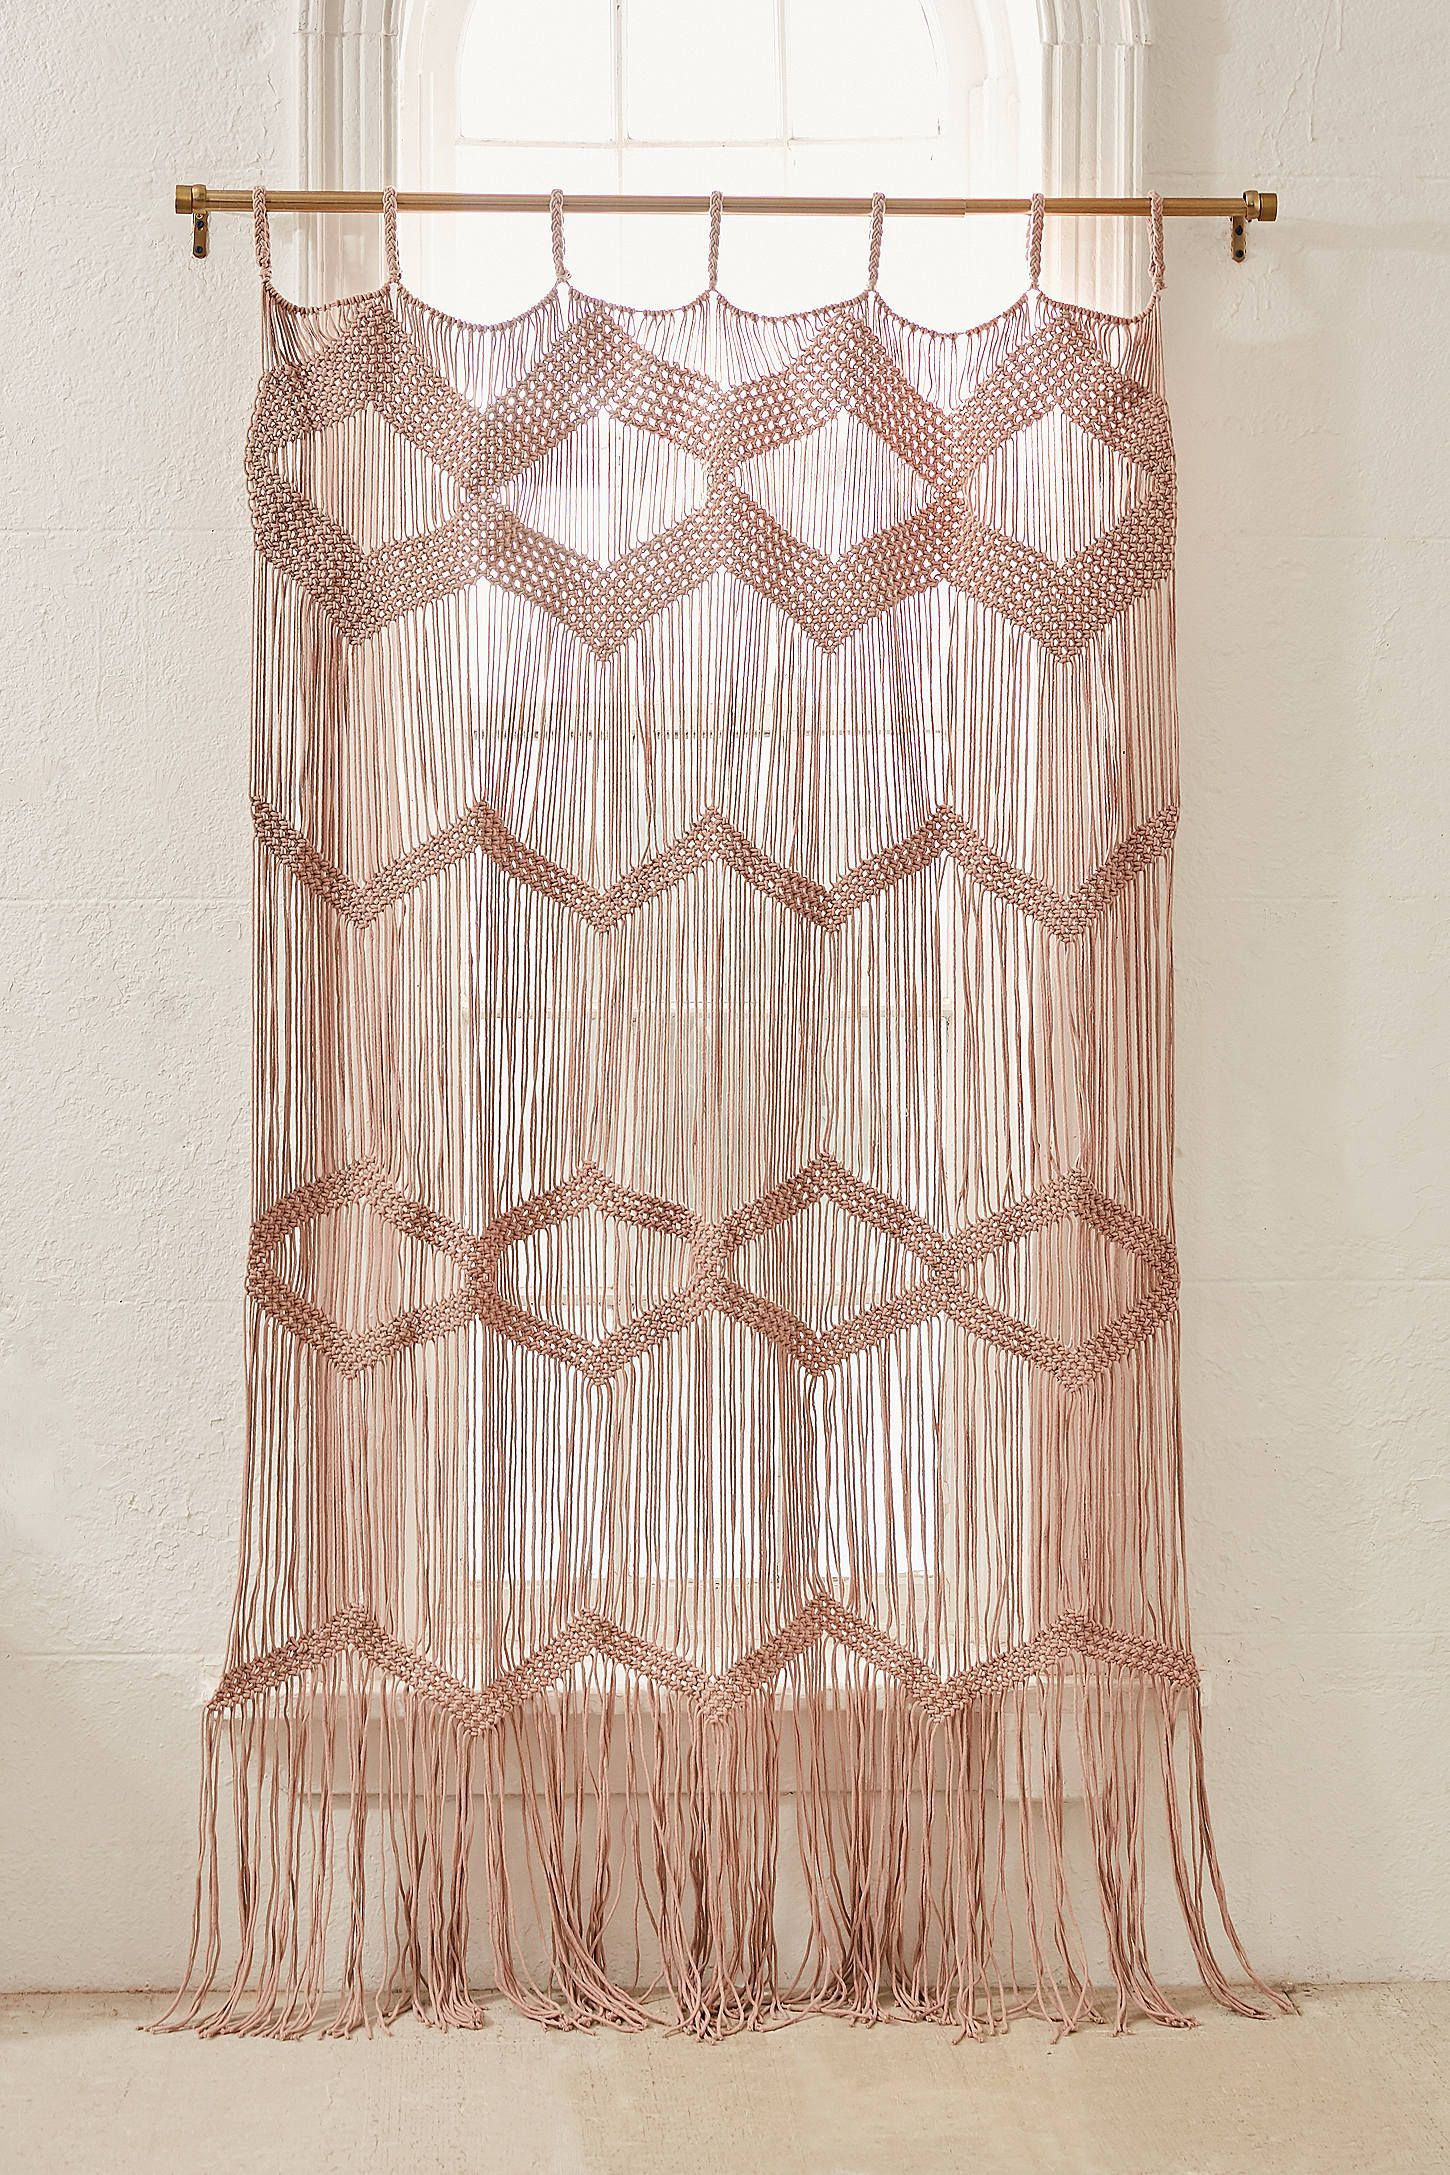 Meadowsweet Macrame Panel Urban Outfitters Fabric Room